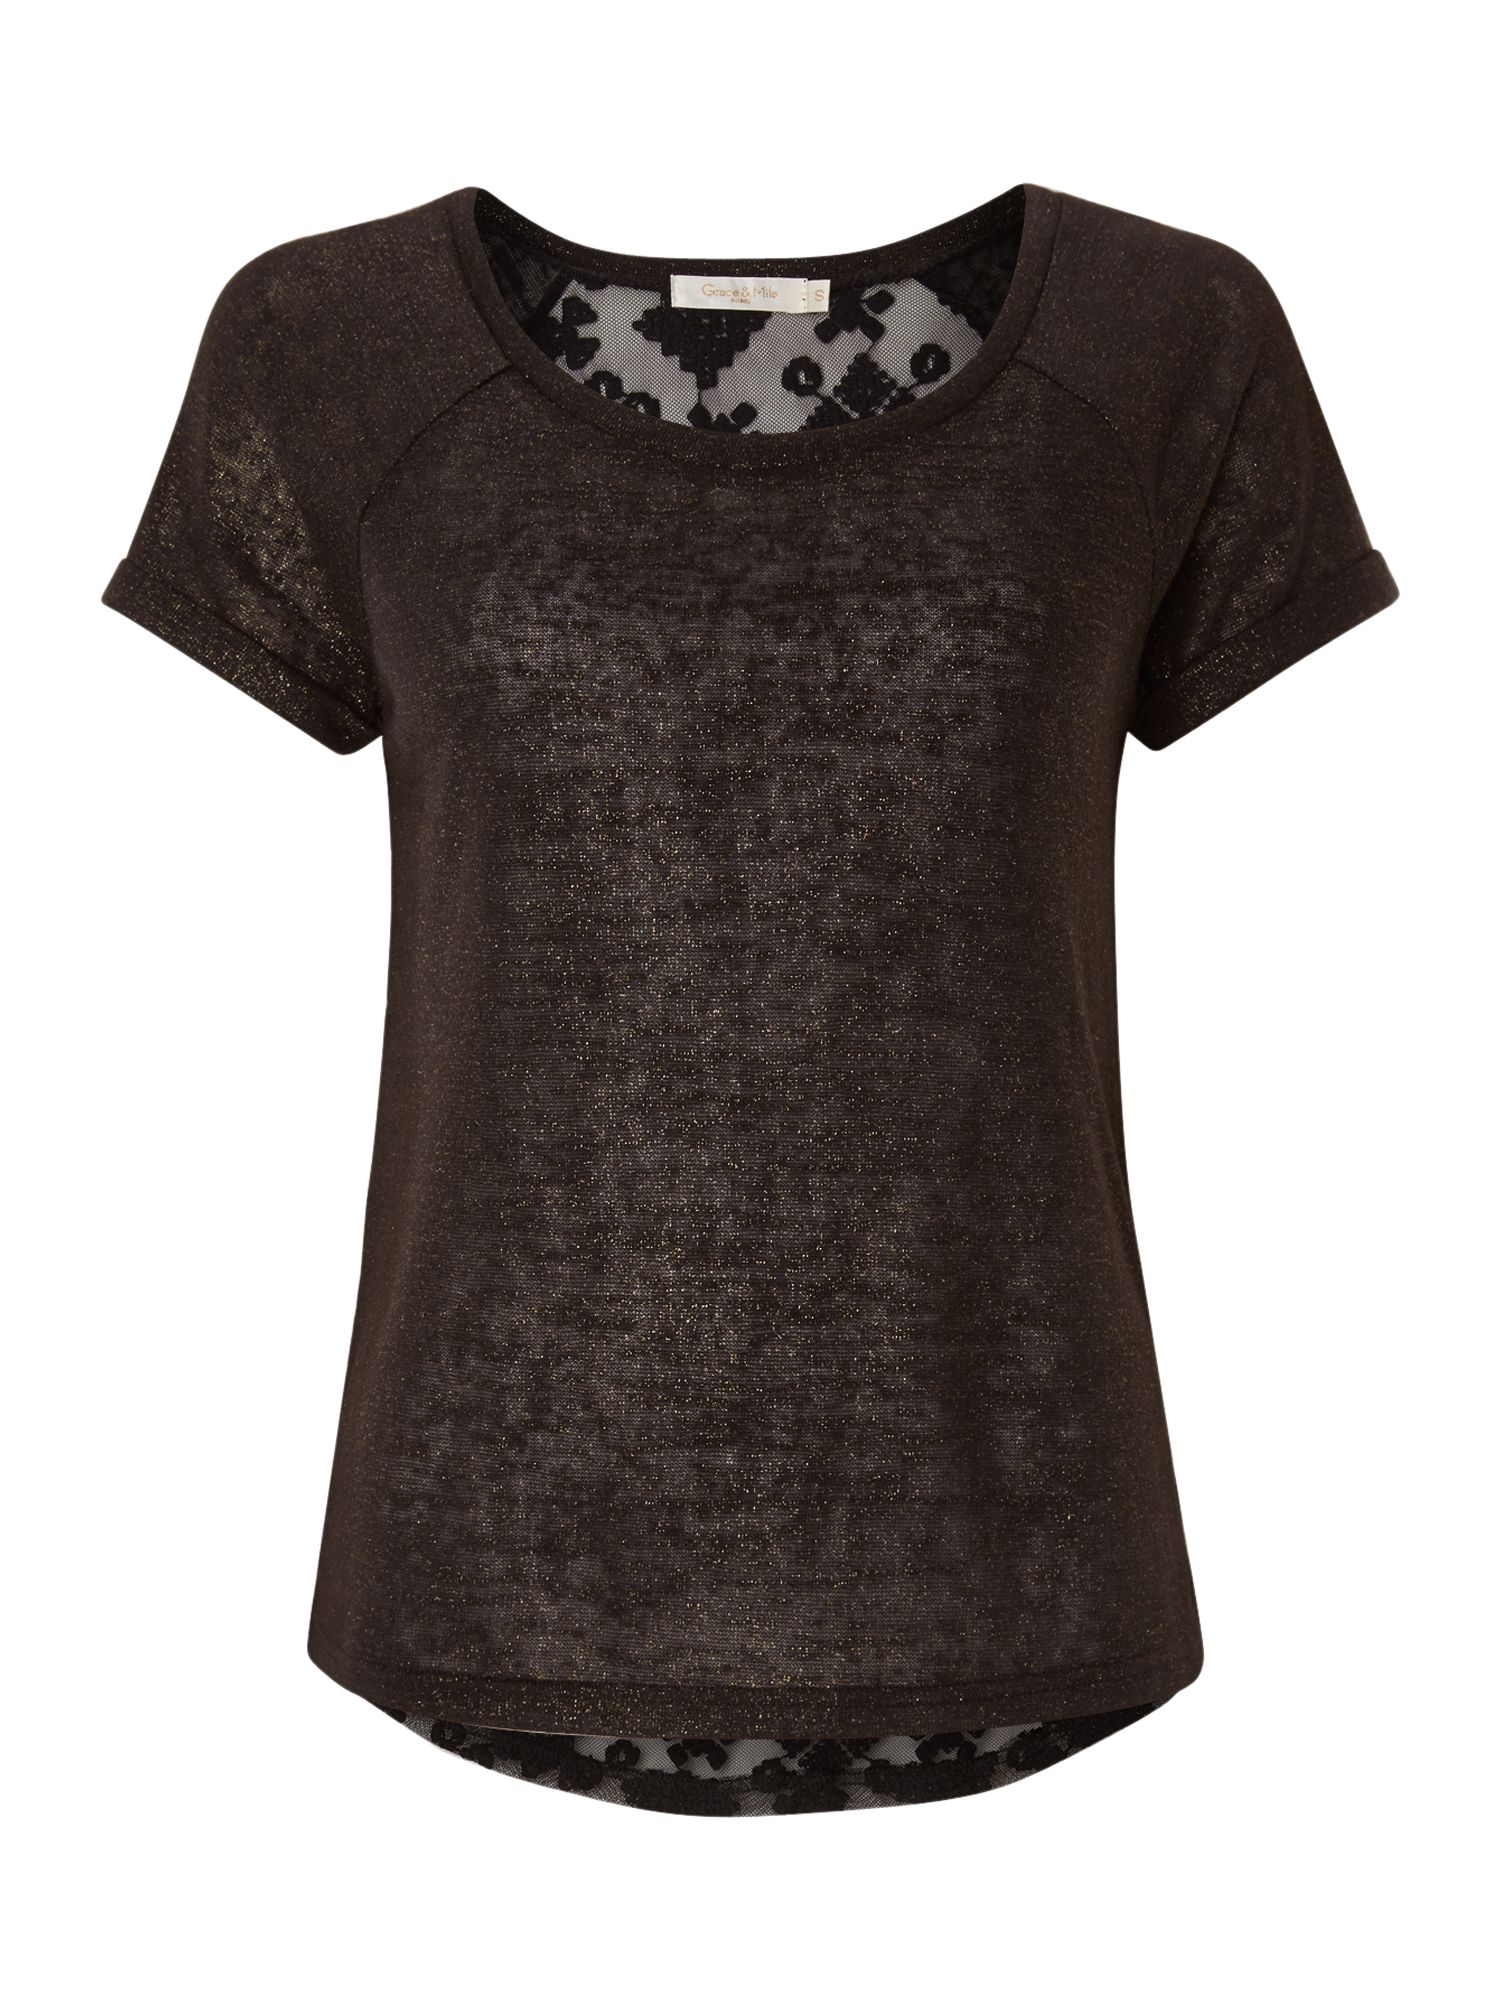 Lace Back T shirt